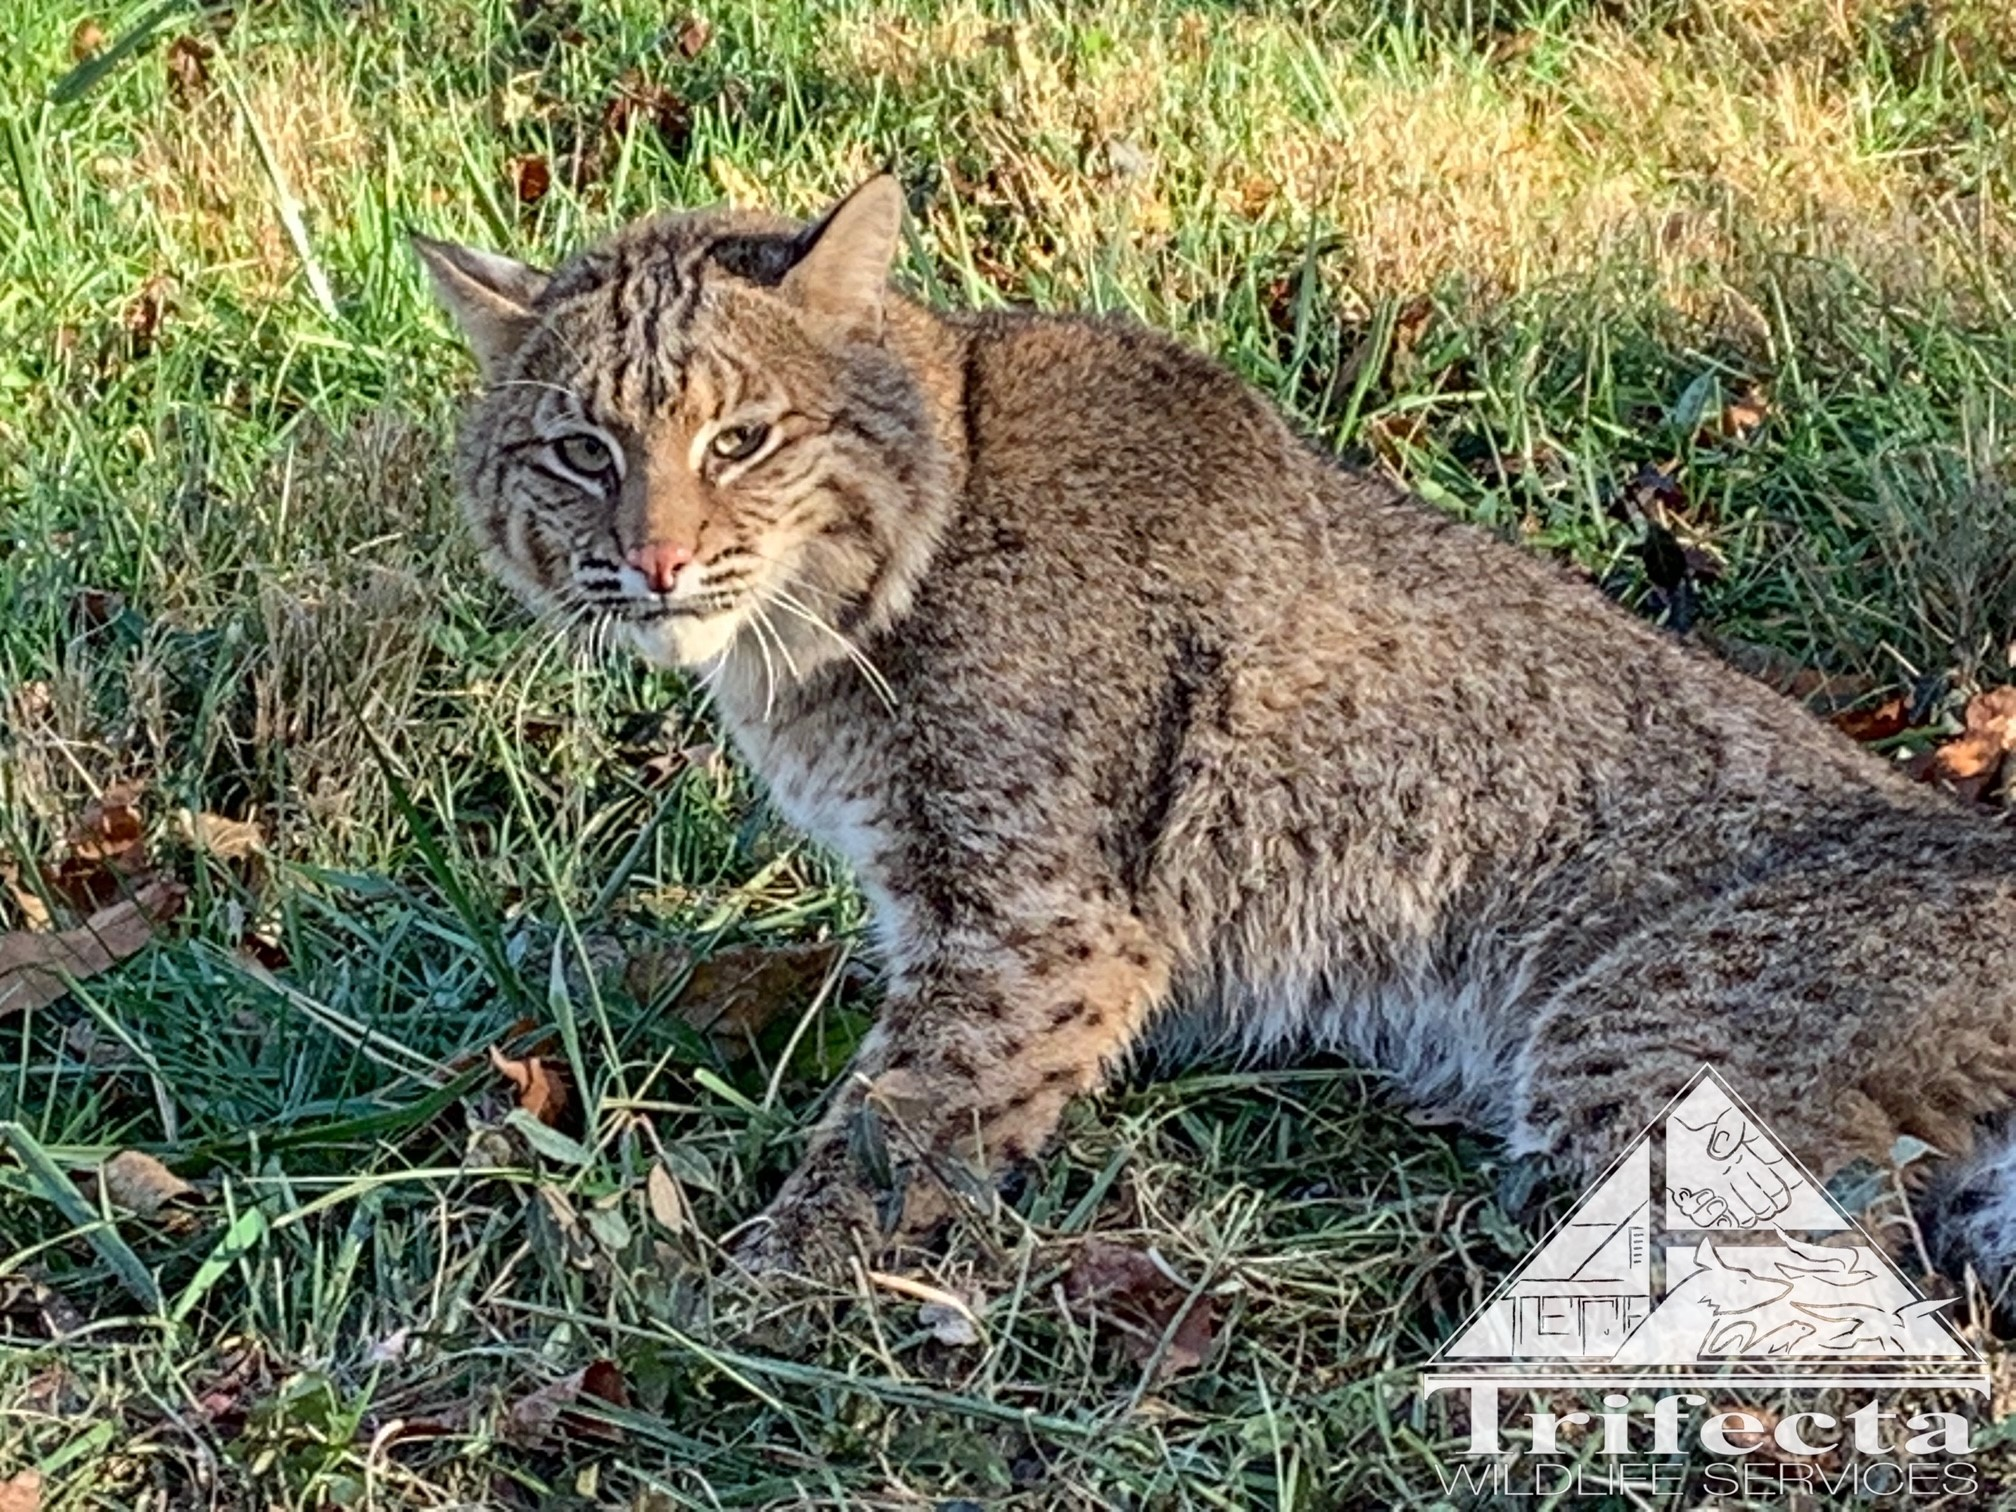 Bobcat removal is available though a rarely needed service